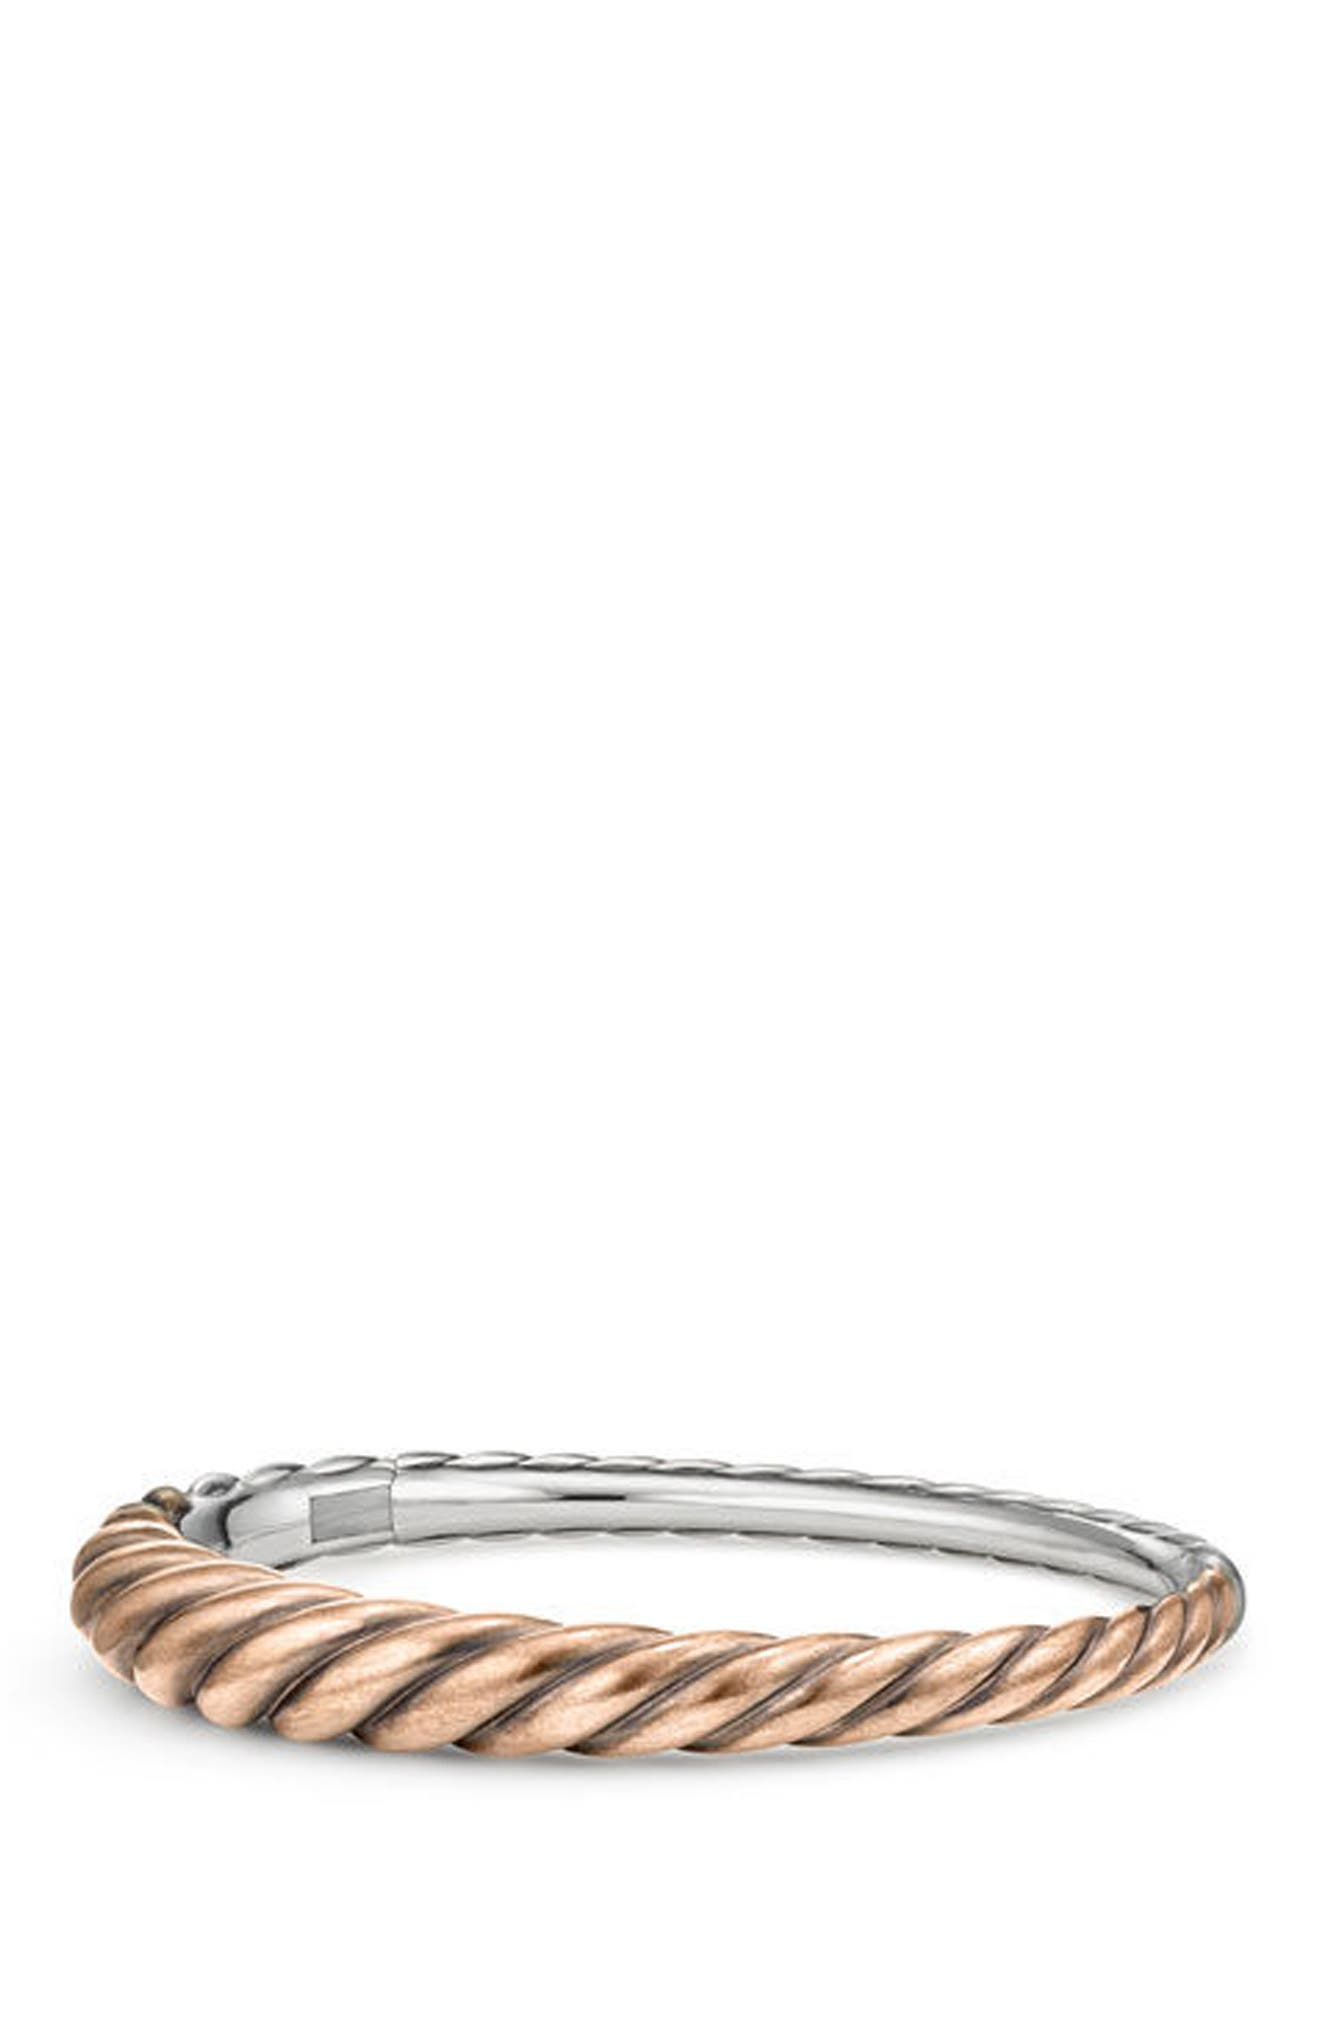 Pure Form Mixed Metal Cable Bracelet with Bronze and Silver, 9.5mm,                         Main,                         color, SILVER